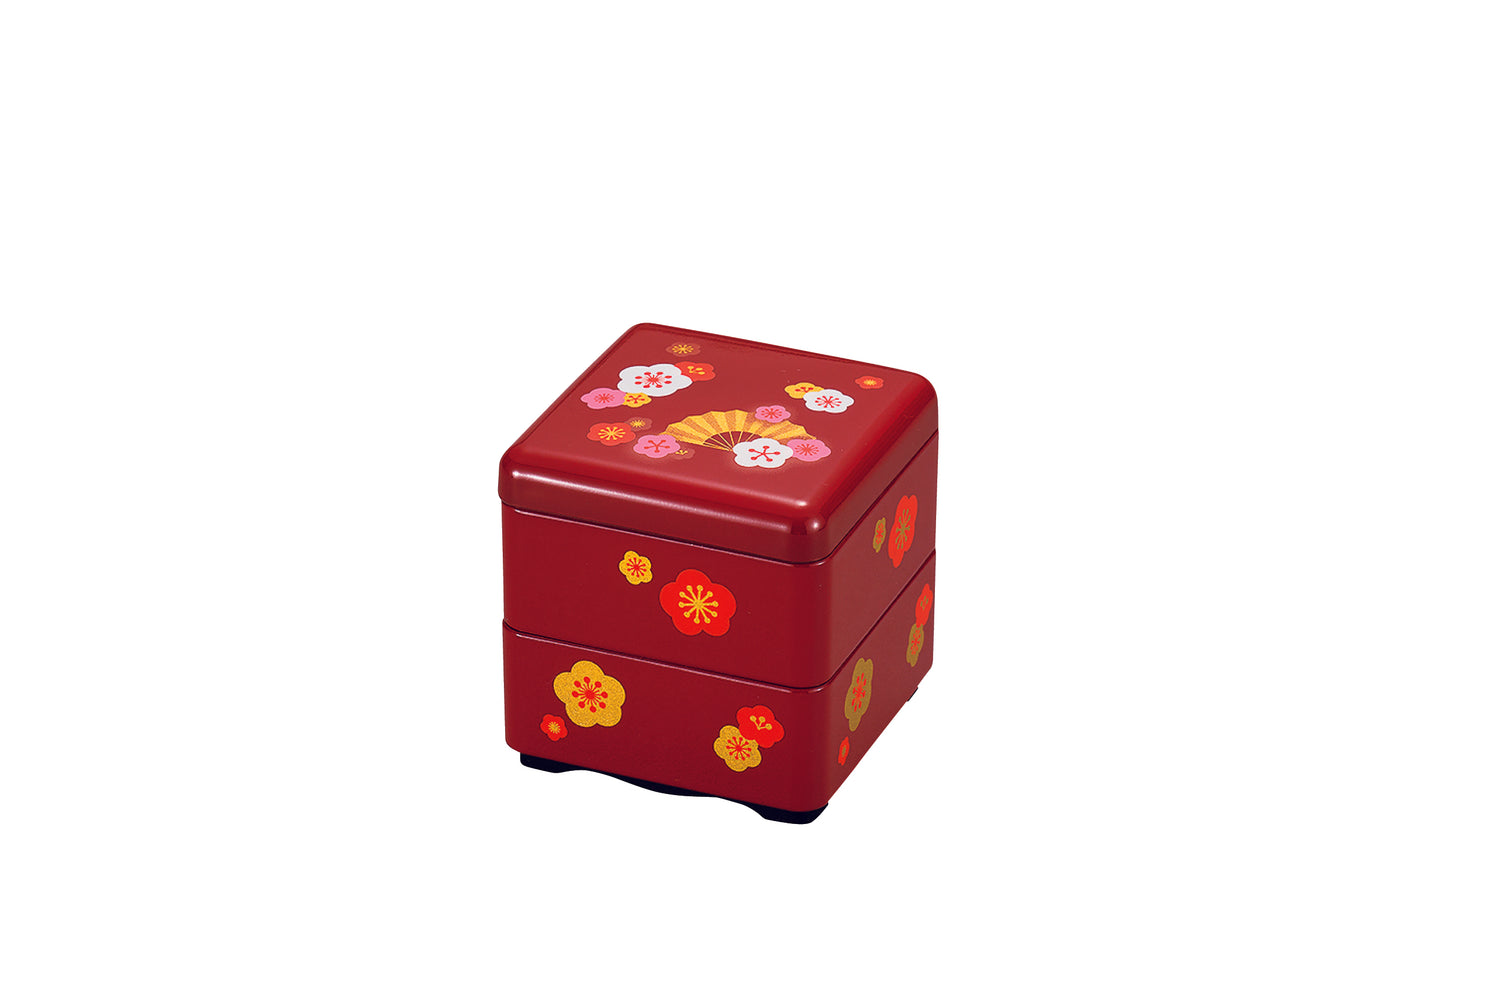 Sensu Sakura Square Bento Box Small | Red